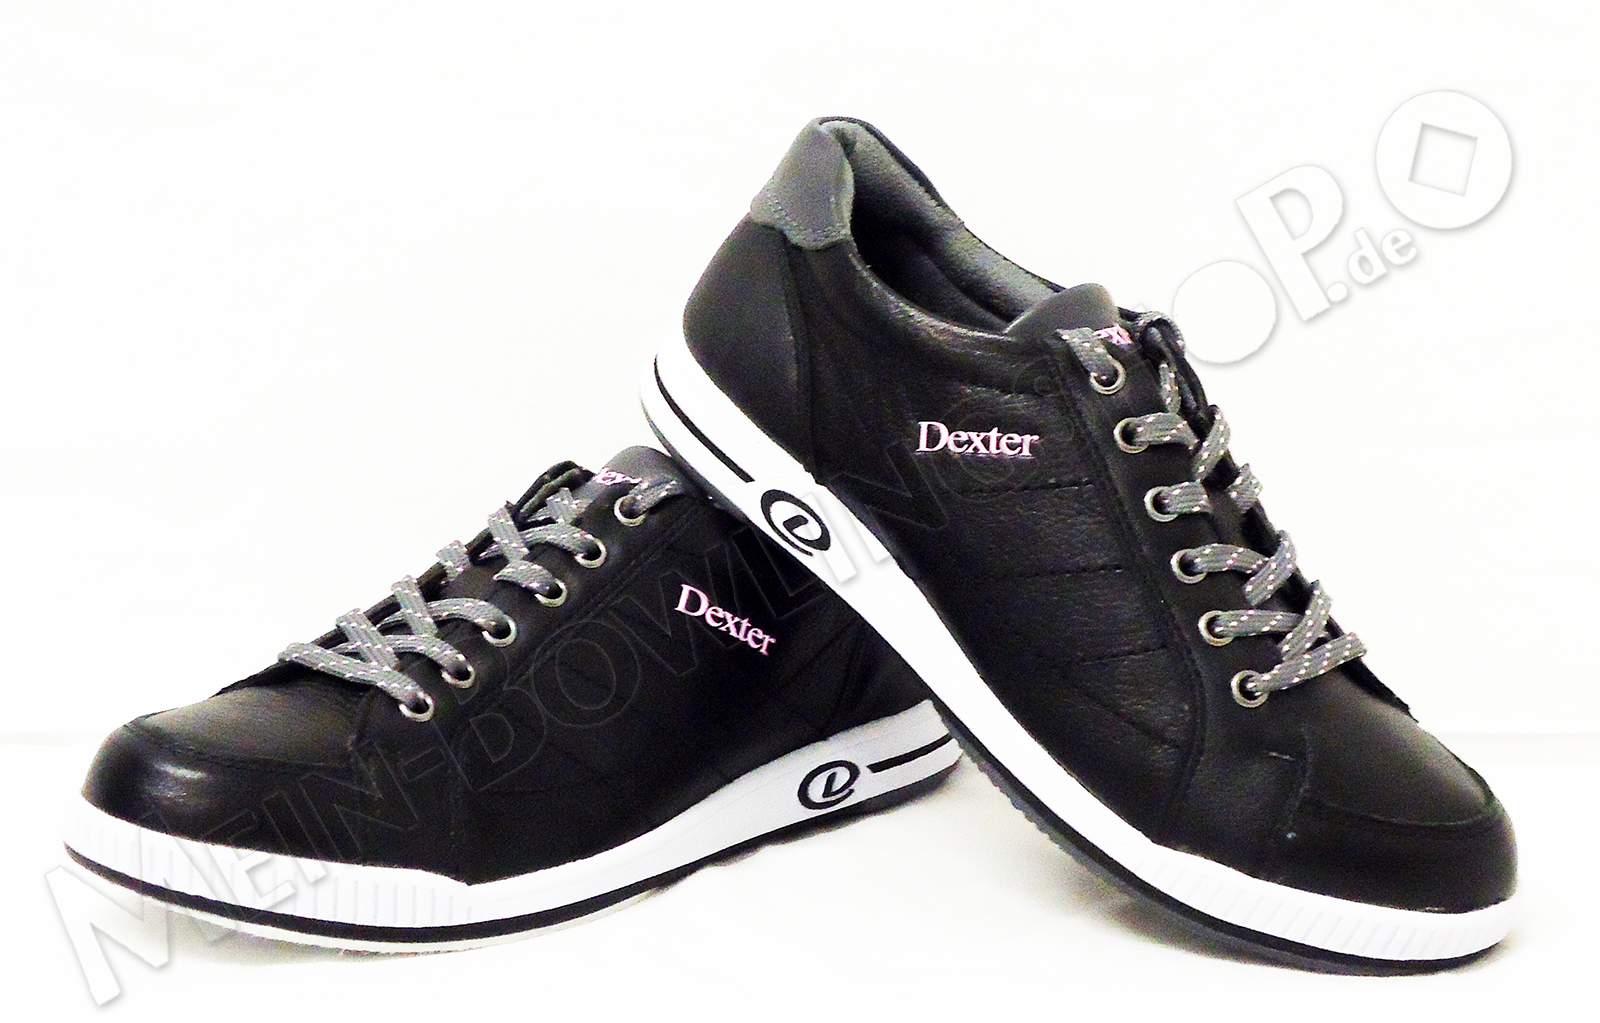 dexter women Looking to buy dexter bowling shoes from an online retailer you can trust find out why we are rated #1 in customer service, product knowledge and price.